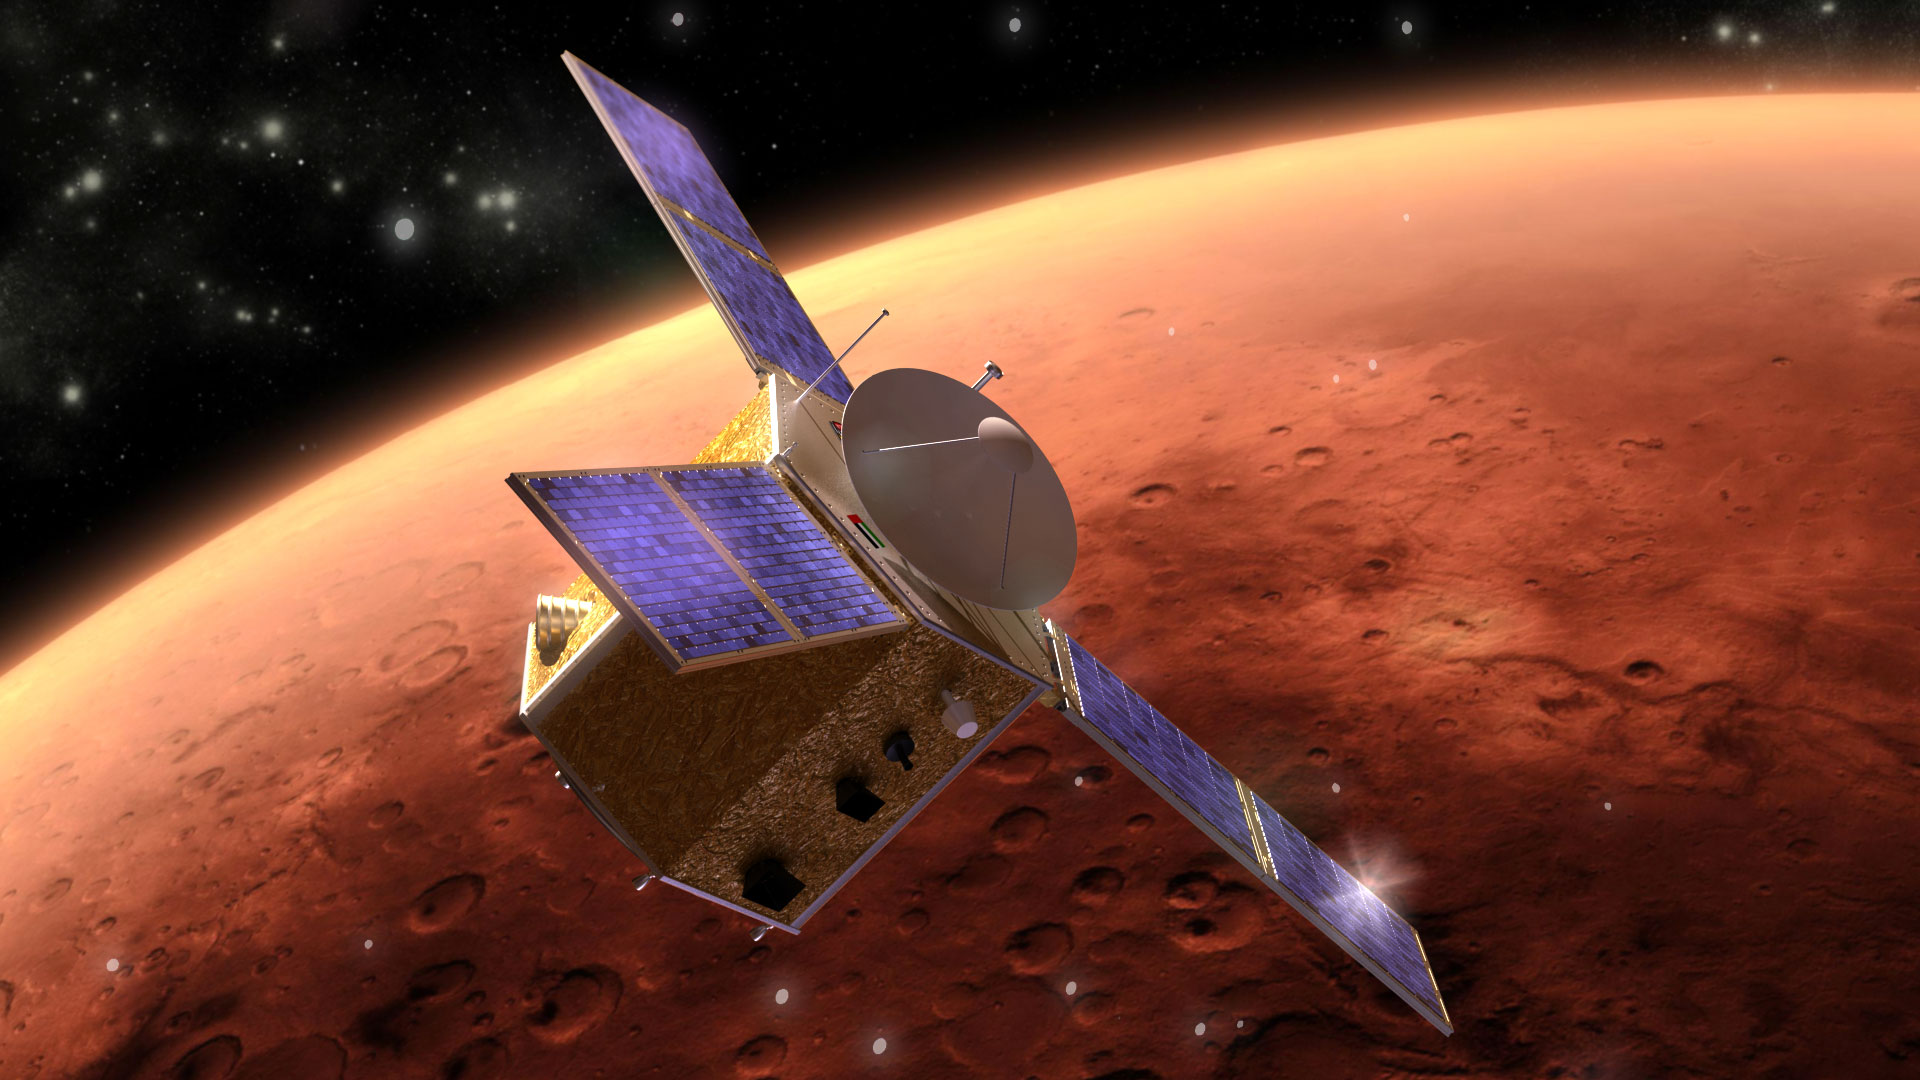 Artist's concept of the Emirates Mars Mission. Credit: Mohammed bin Rashid Space Center